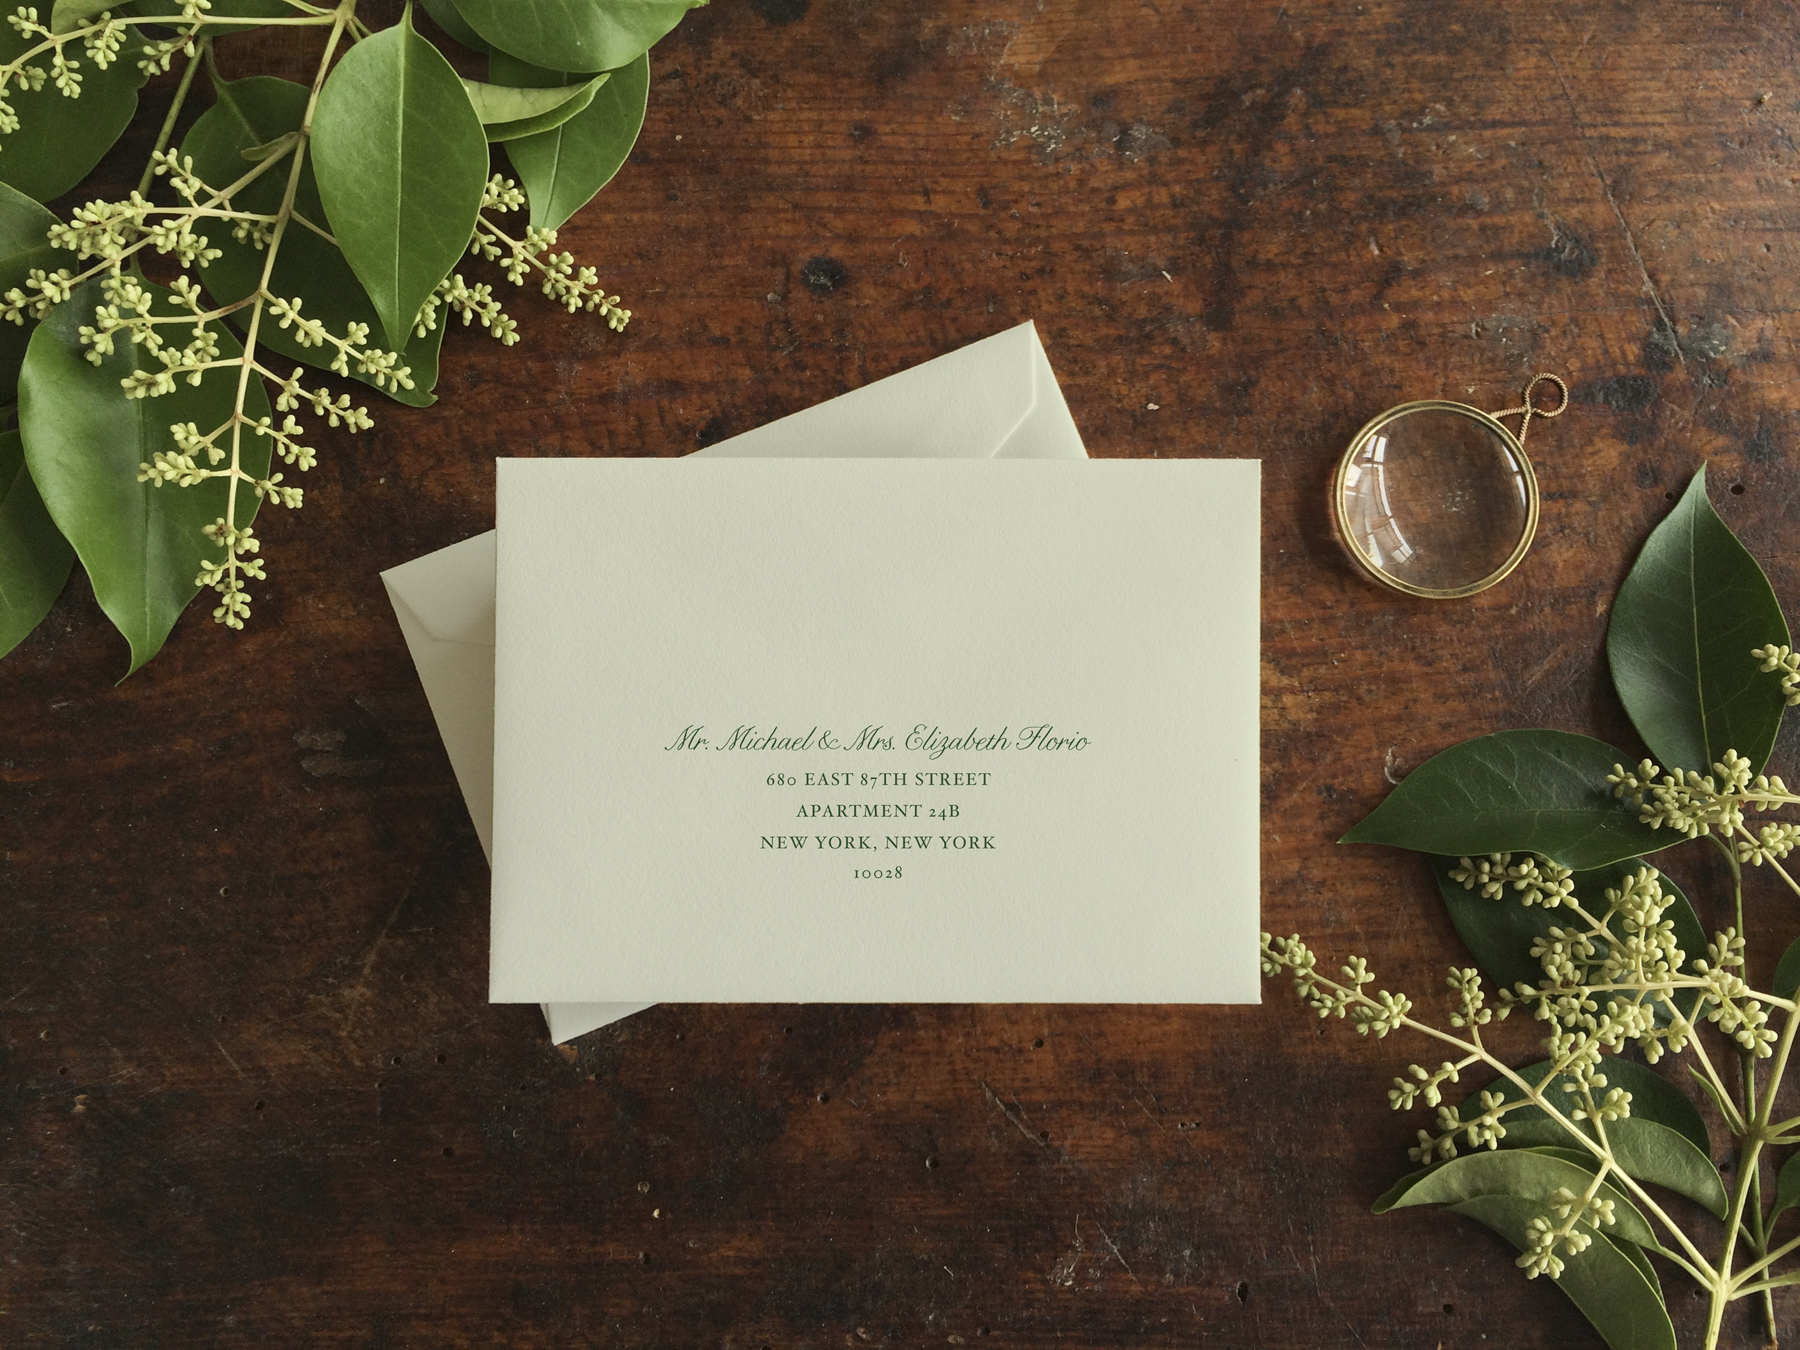 printed-envelope-wedding.jpg